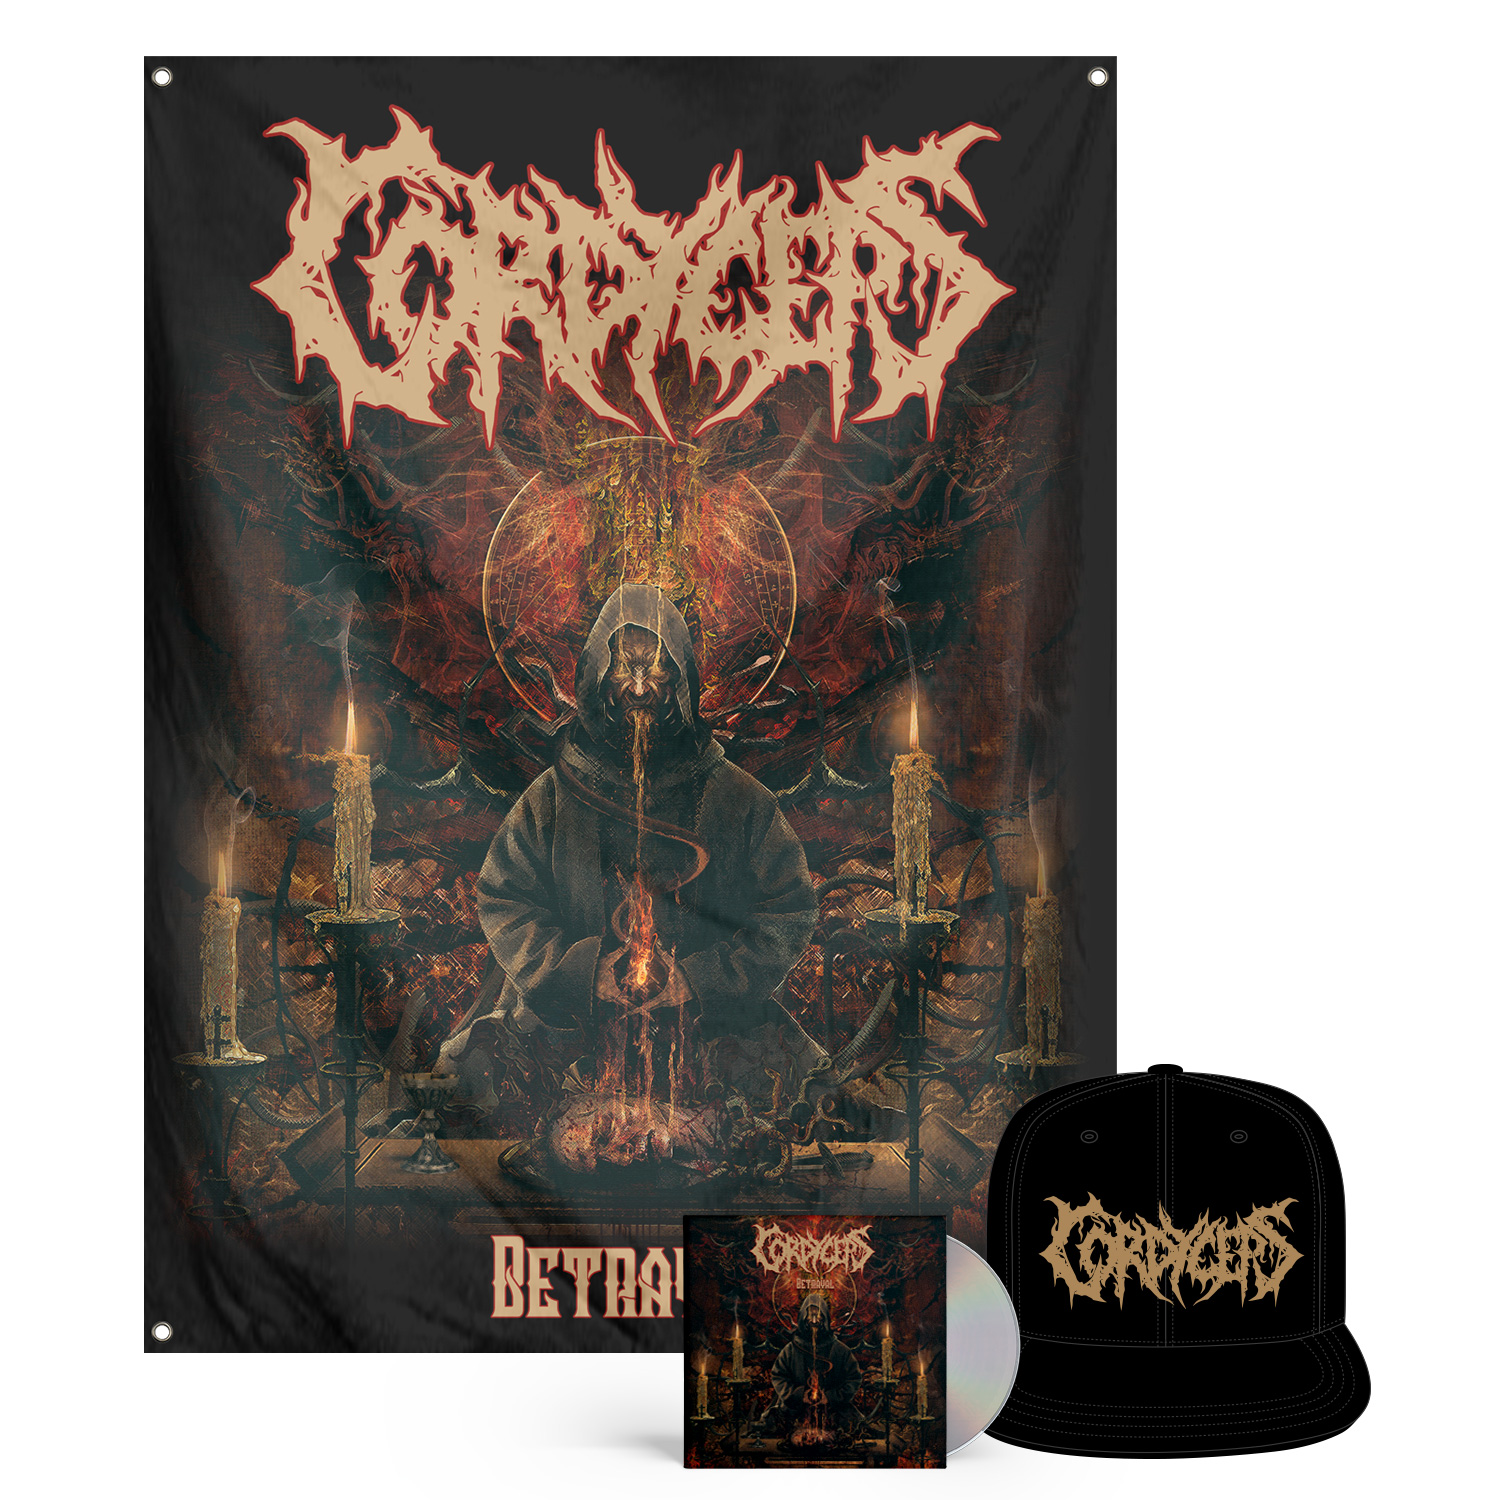 Betrayal CD + Hat Bundle